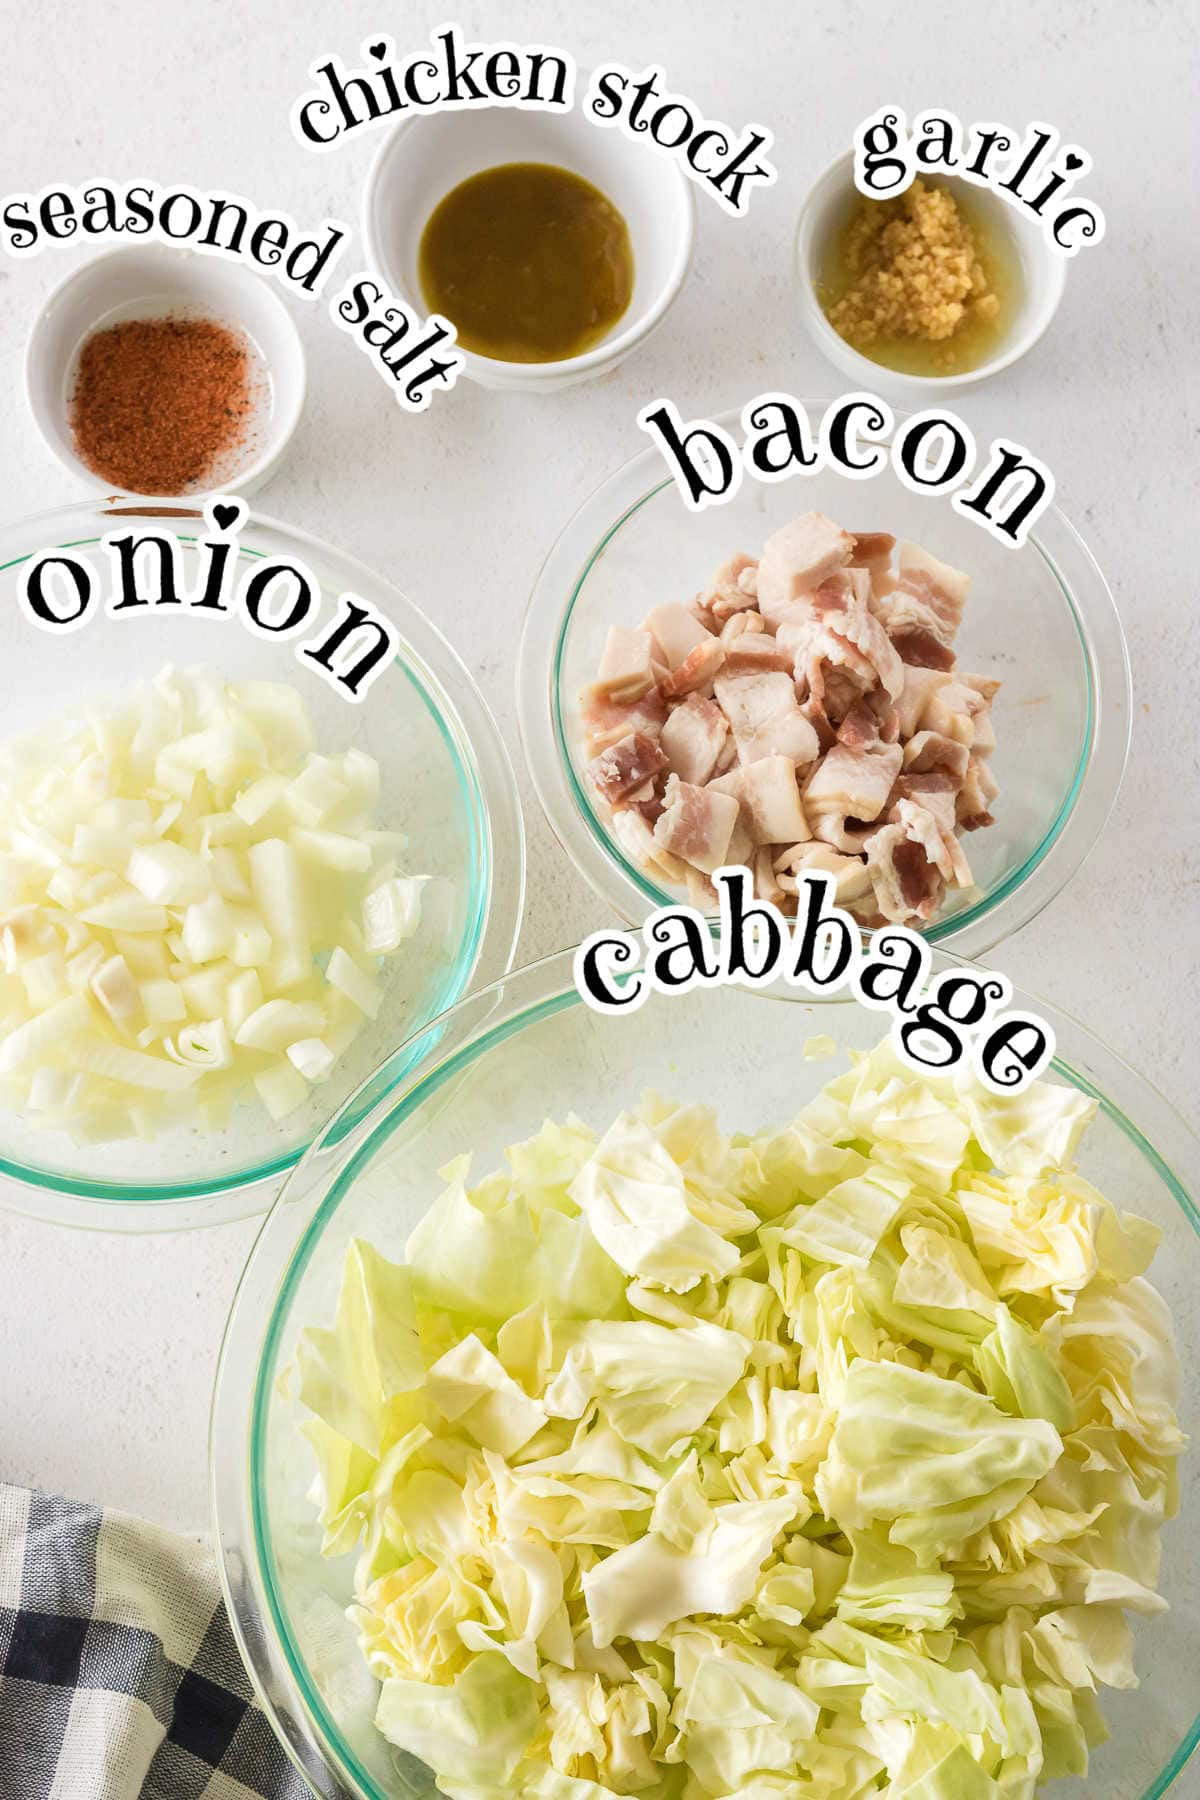 Labeled ingredients for fried cabbage recipe.